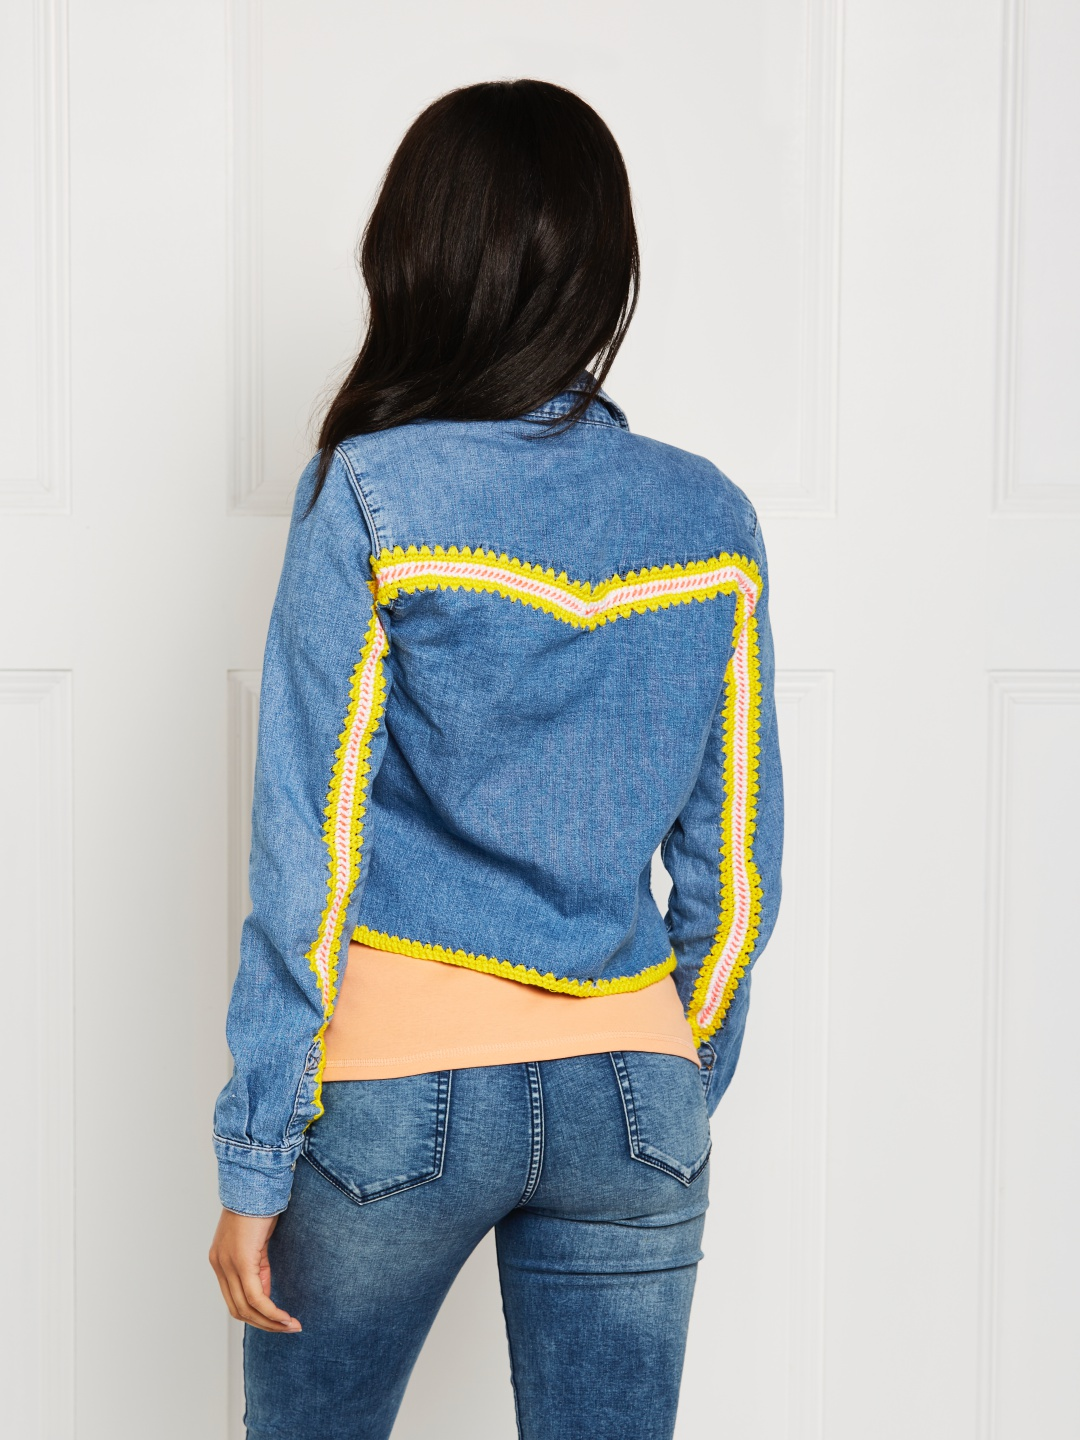 Take a look inside our new look issue! - image Emma-F-C-Crochet-Hack-Jacket-3 on https://knitting-crocheting-yarn.com